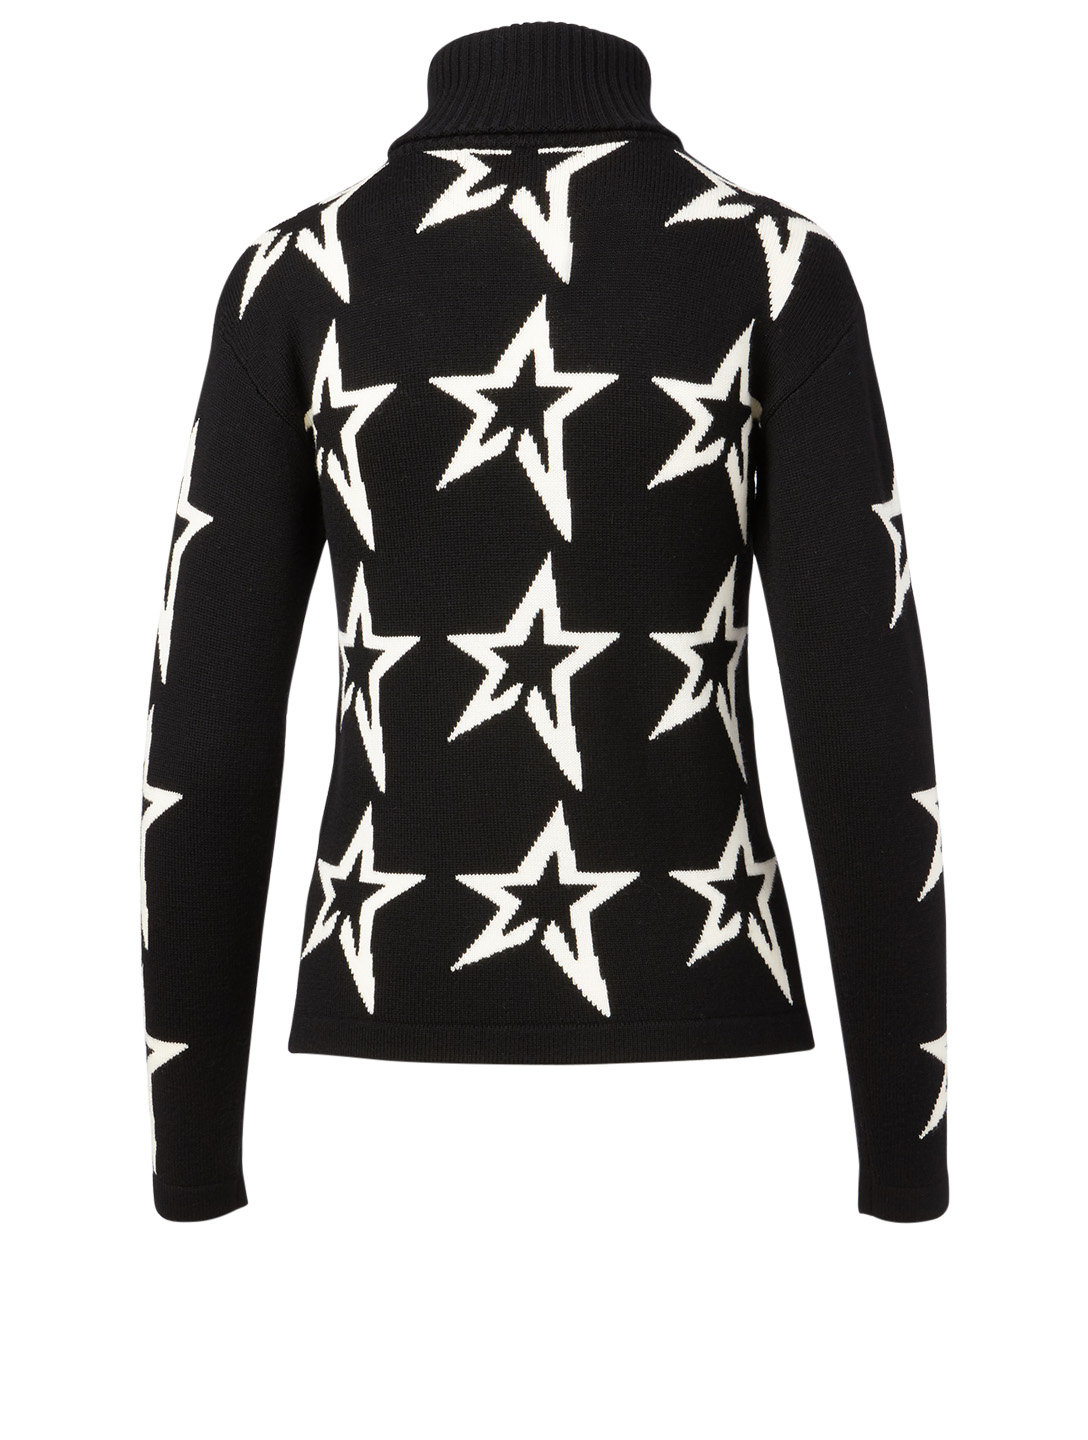 PERFECT MOMENT Wool Star Dust Turtleneck Sweater Women's Black